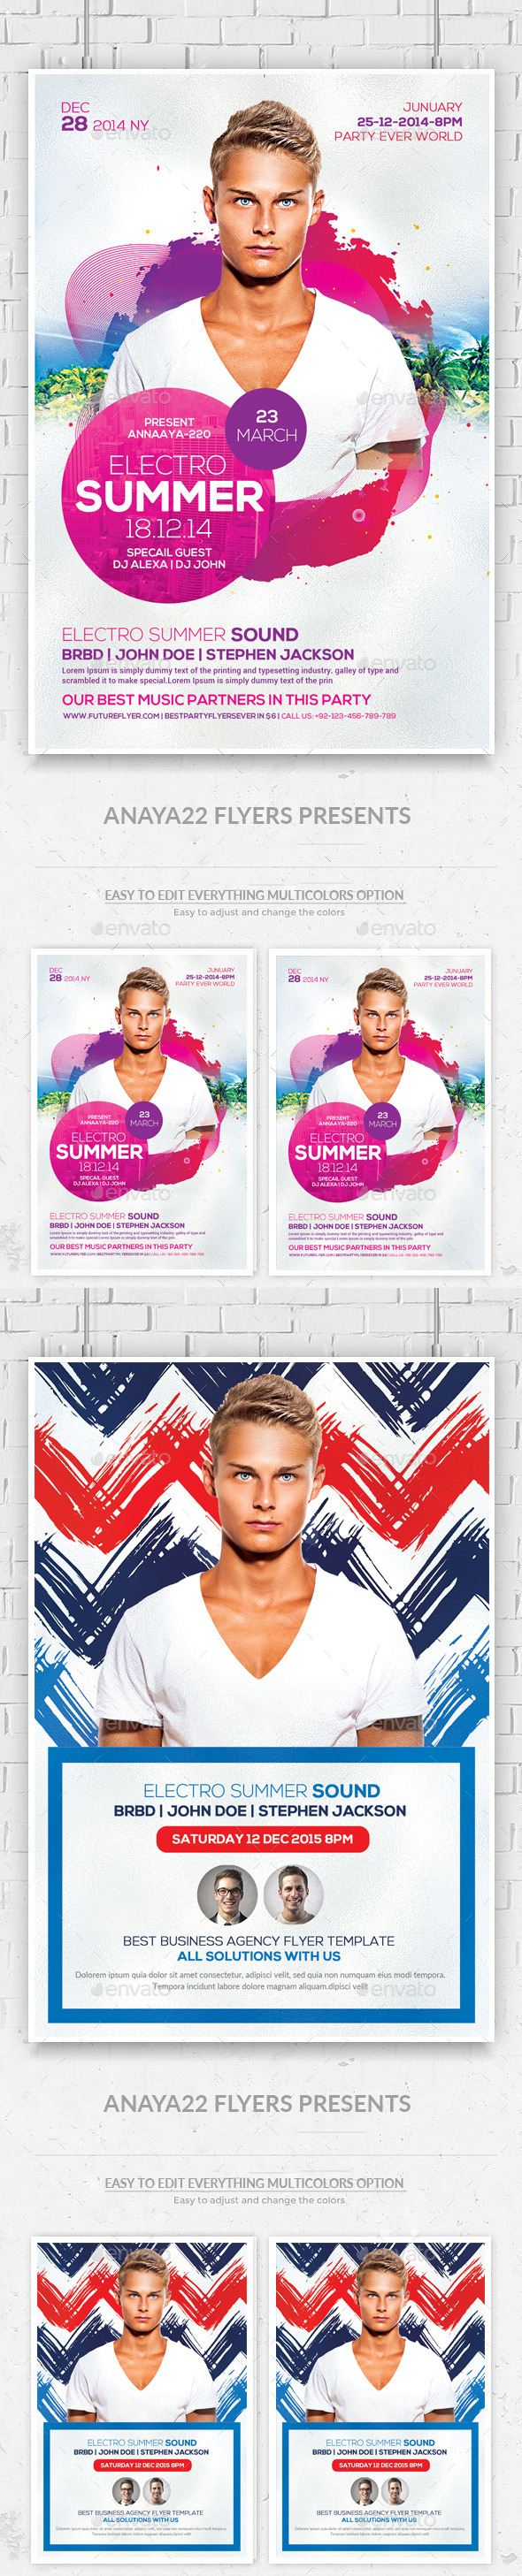 GraphicRiver Summer Electro DJ Flyers Bundle 11766074